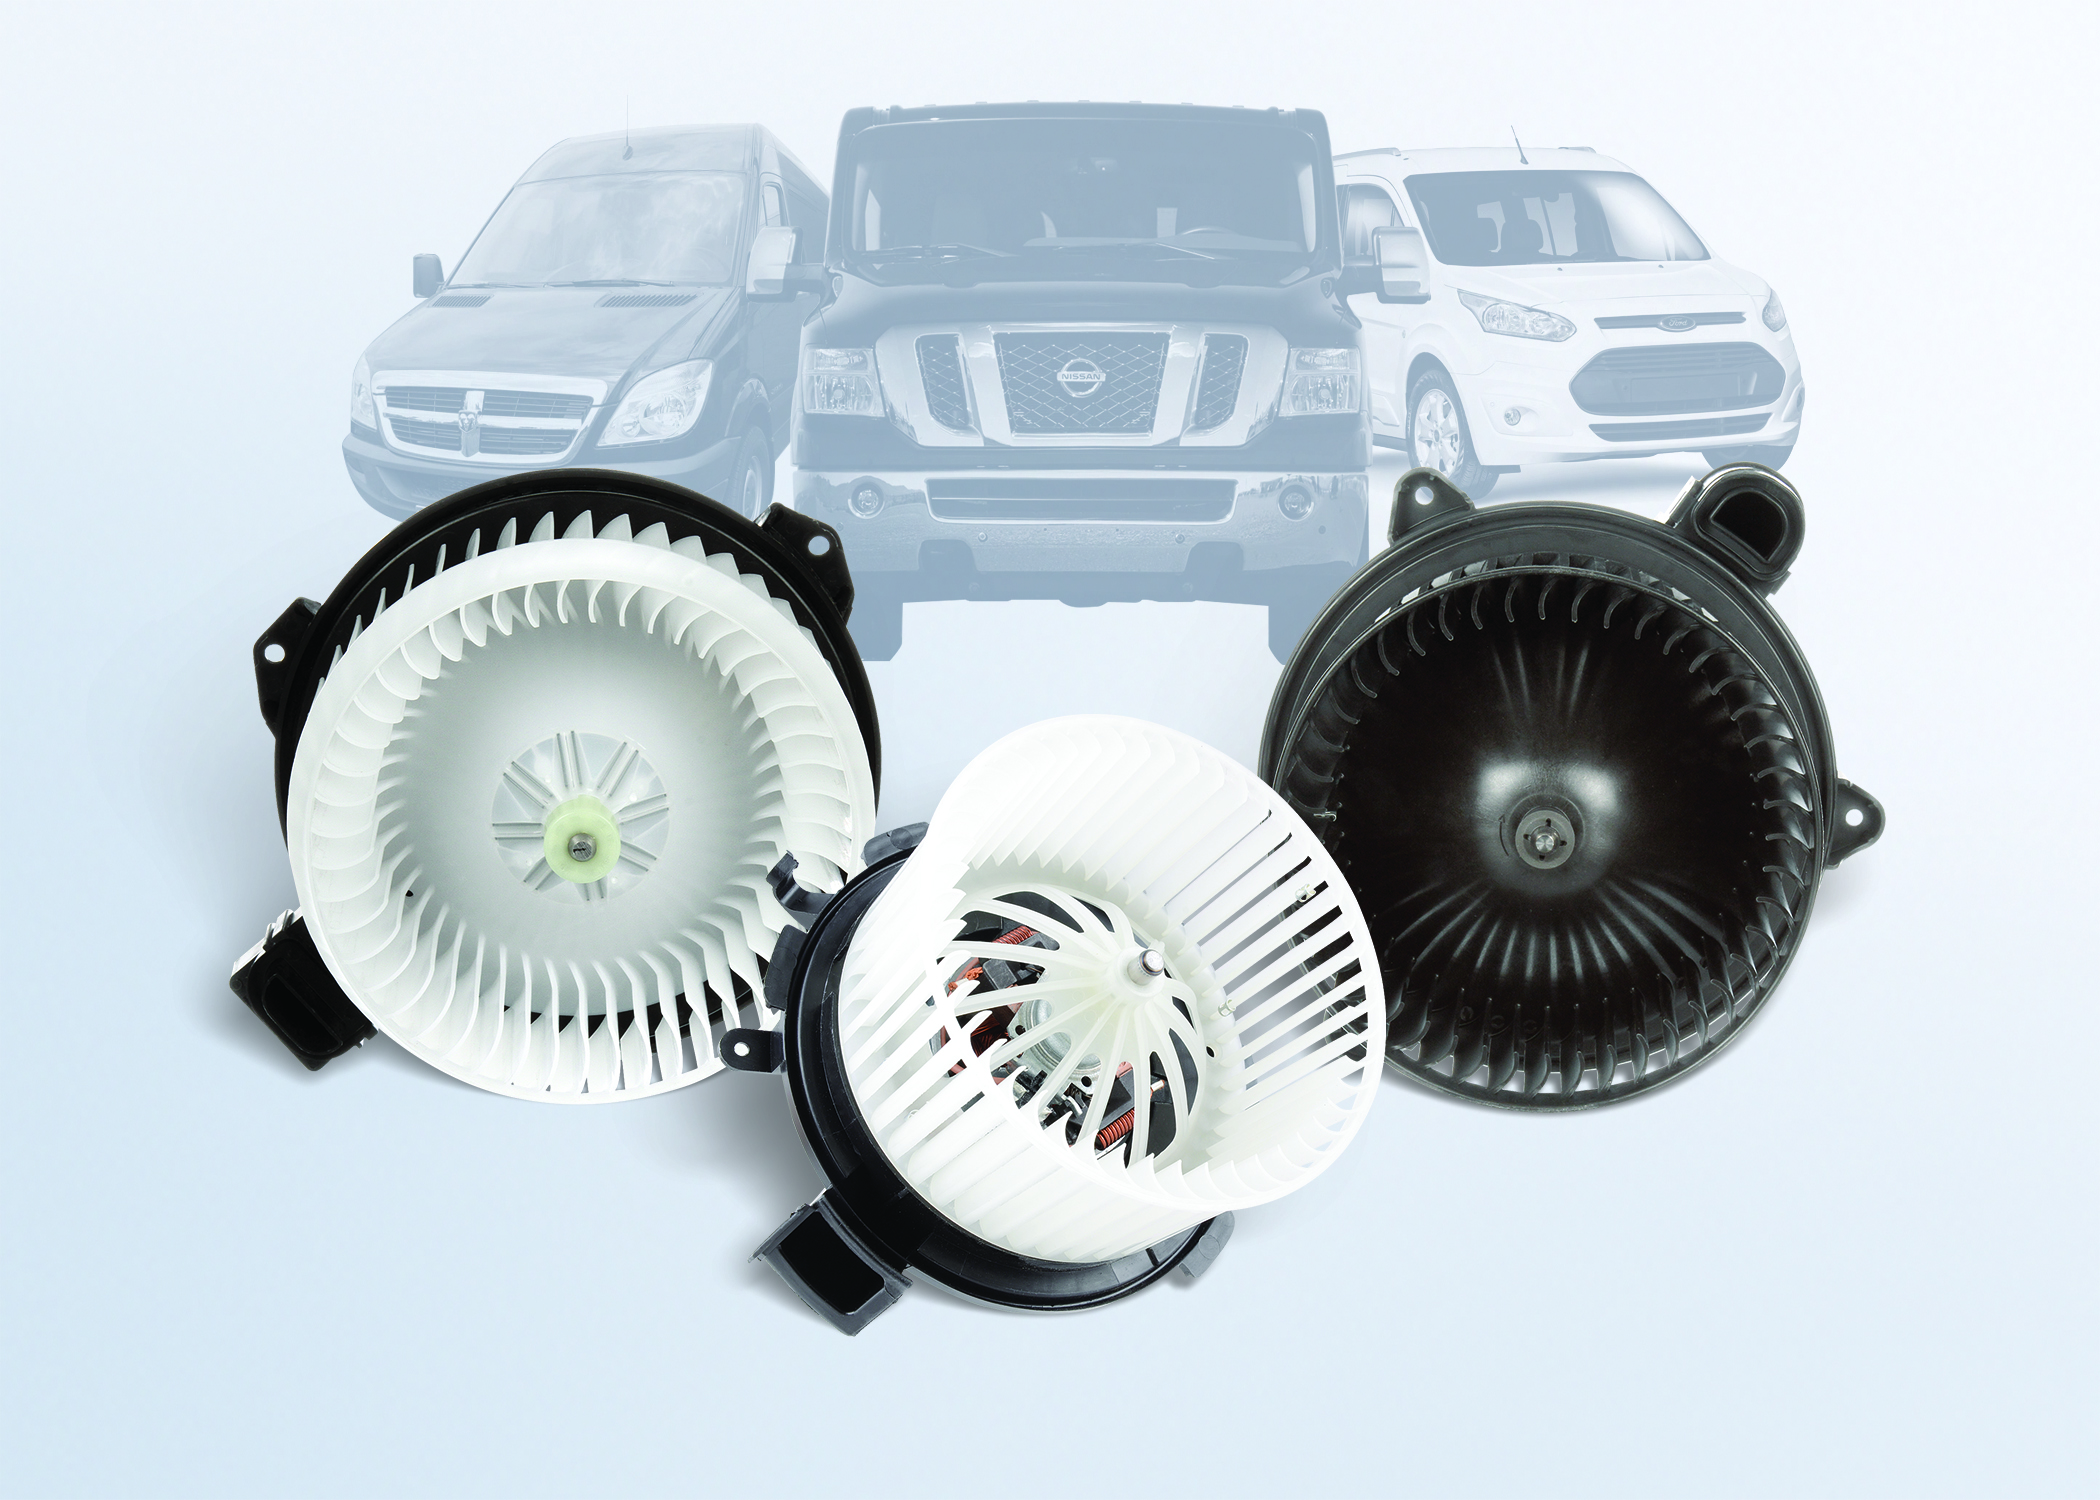 Continental VDO Blower Motors Fit Utility Vans